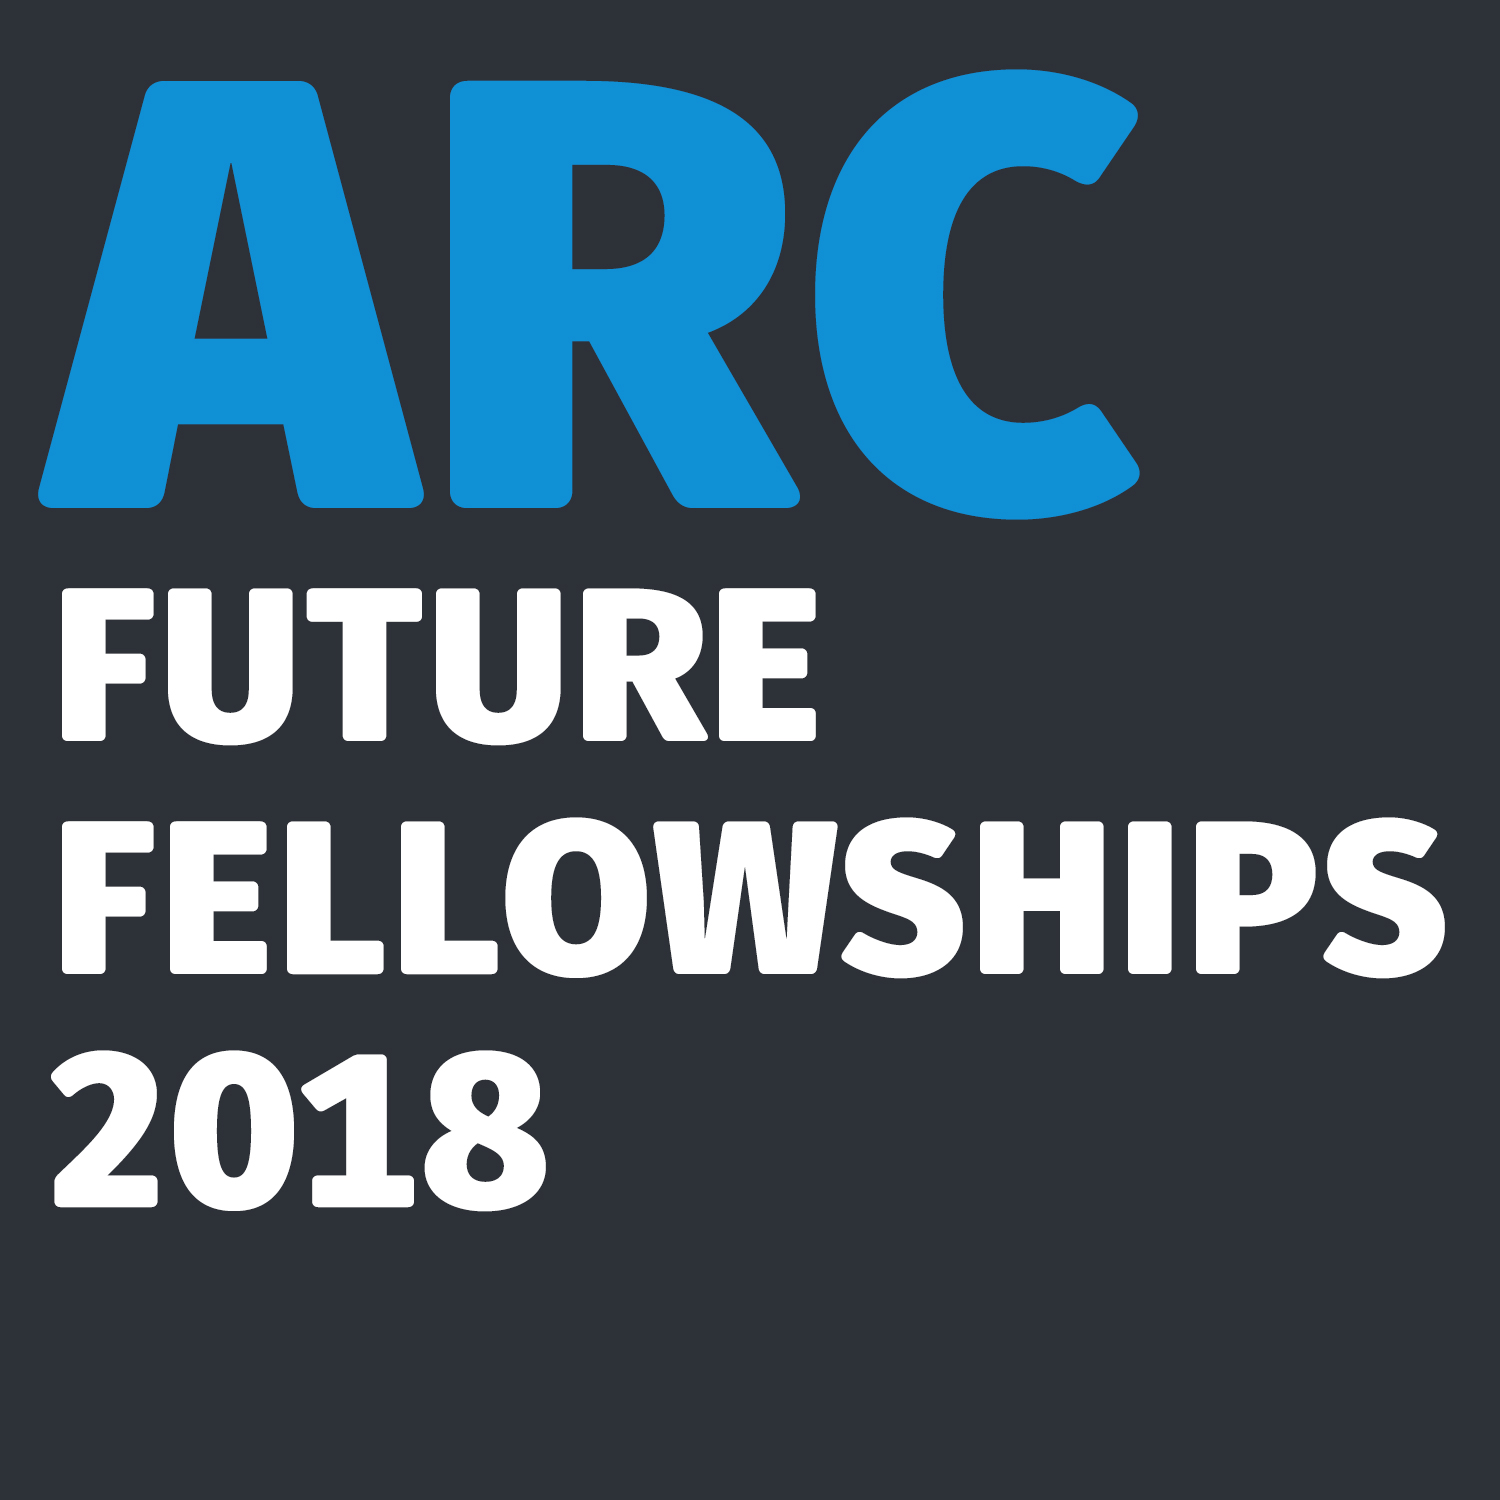 ARC Future Fellowships 2018